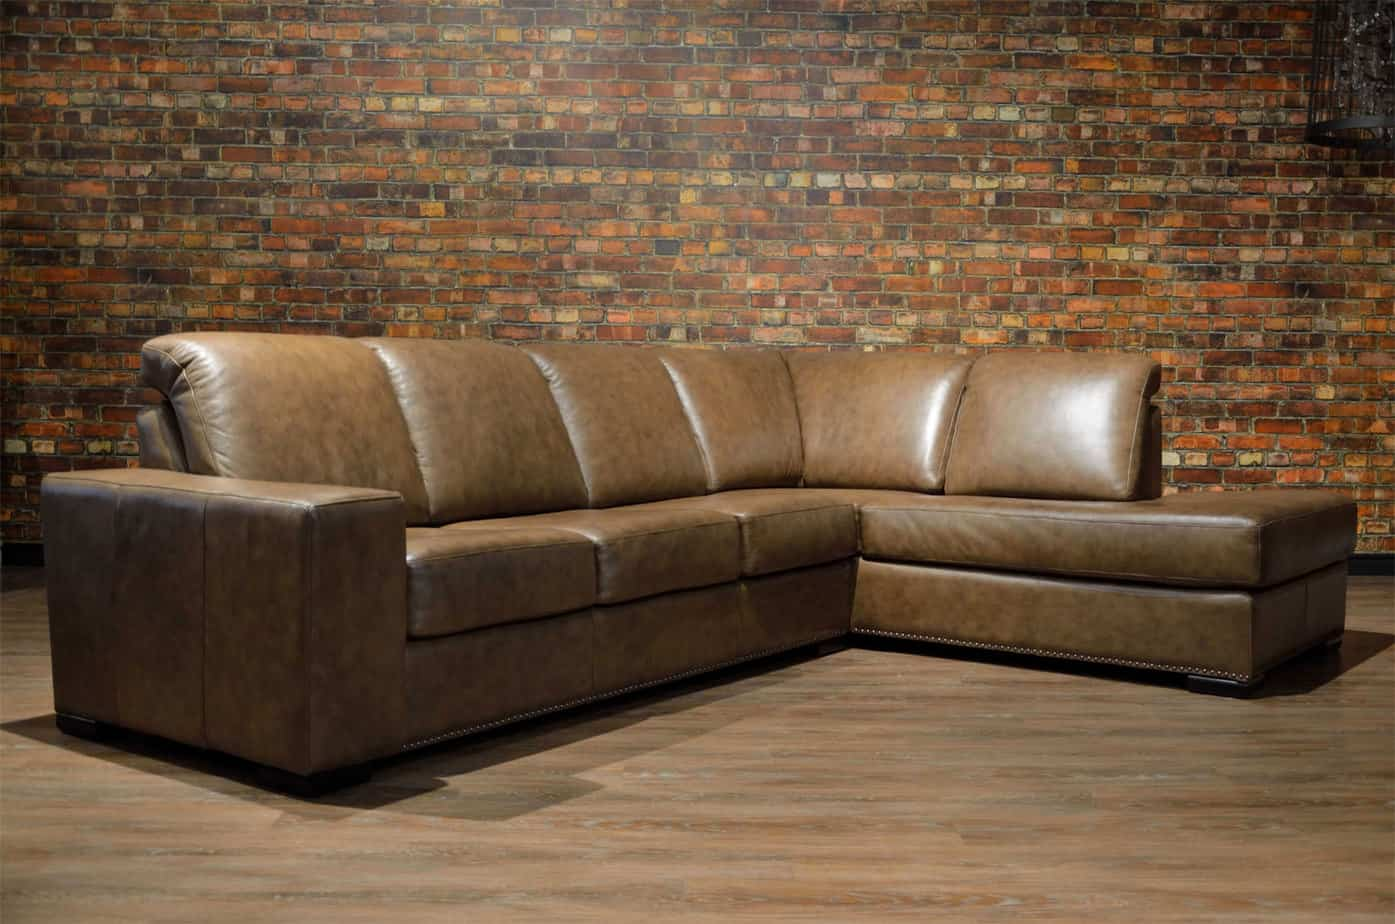 Leather sectional sofa bed canada conceptstructuresllccom for Leather sectional sofa bed canada